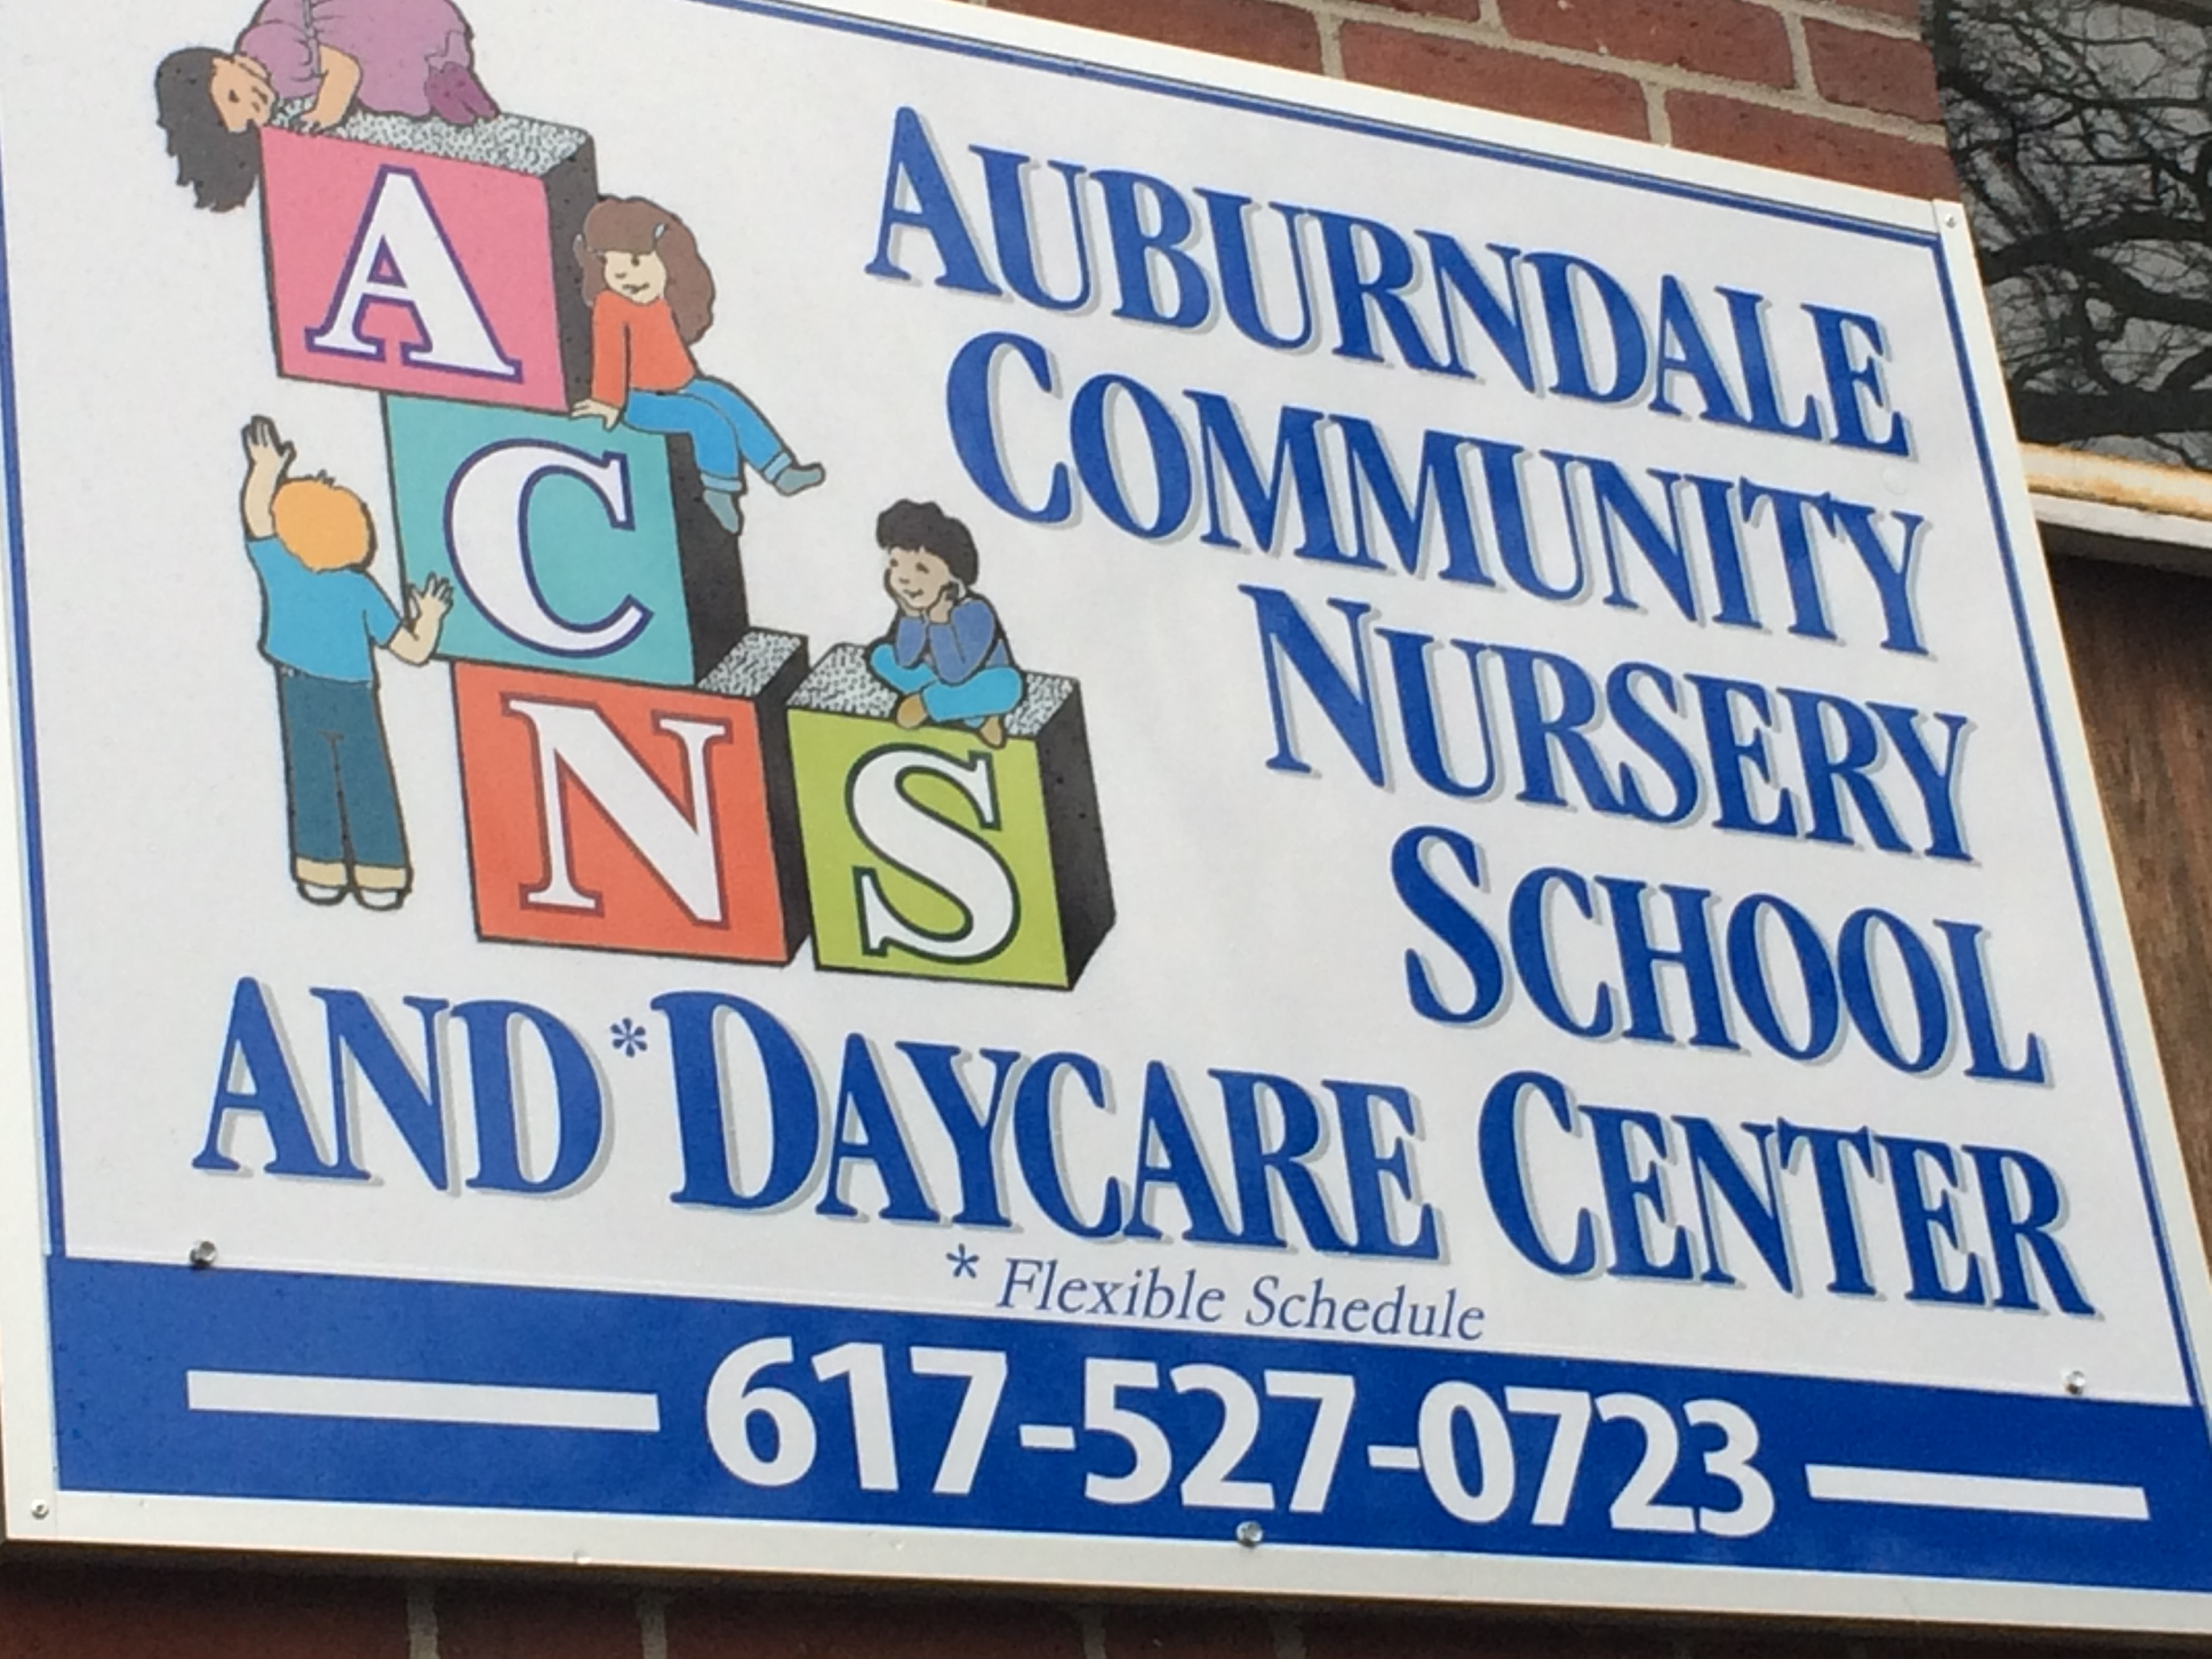 Holiday Scholarship Fundraiser for Auburndale Nursery School